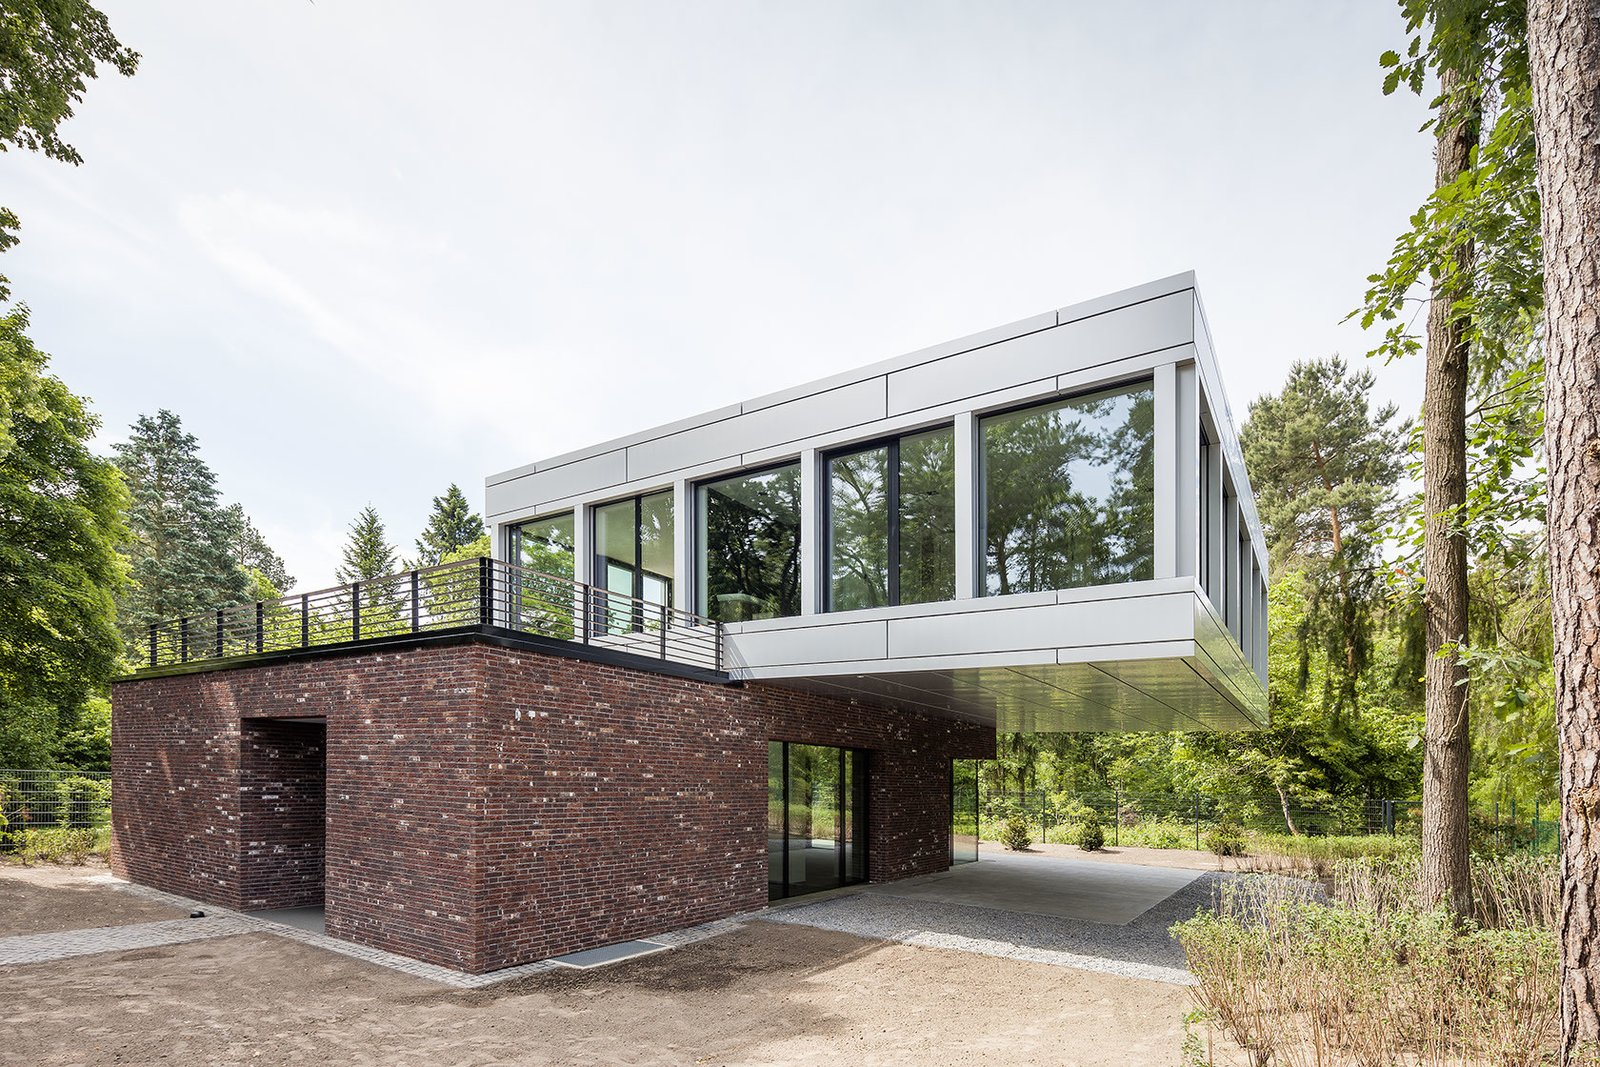 The lower level is covered in traditional red brick, while the upper level consists of coil-coated aluminium sheet with large glass panes. Tagged: Outdoor.  Brick Houses from Around the World  by Matthew Keeshin from Striking Cantilevered Home Pairs Brick and Aluminum